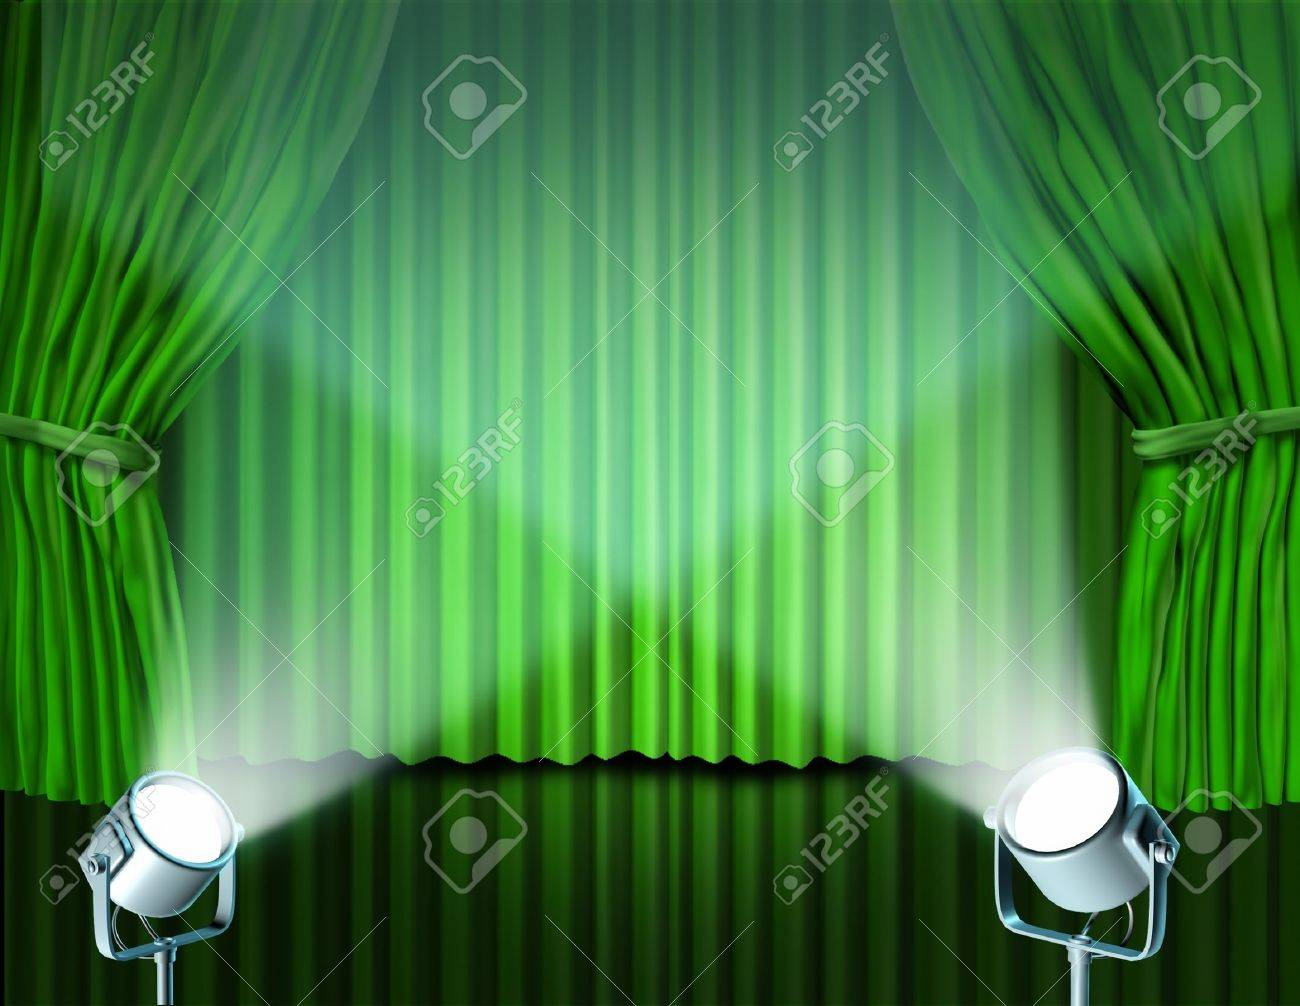 Theater Stage With Spotlights On Green Velvet Cinema Curtain Stock Photo Picture And Royalty Free Image Image 11221502